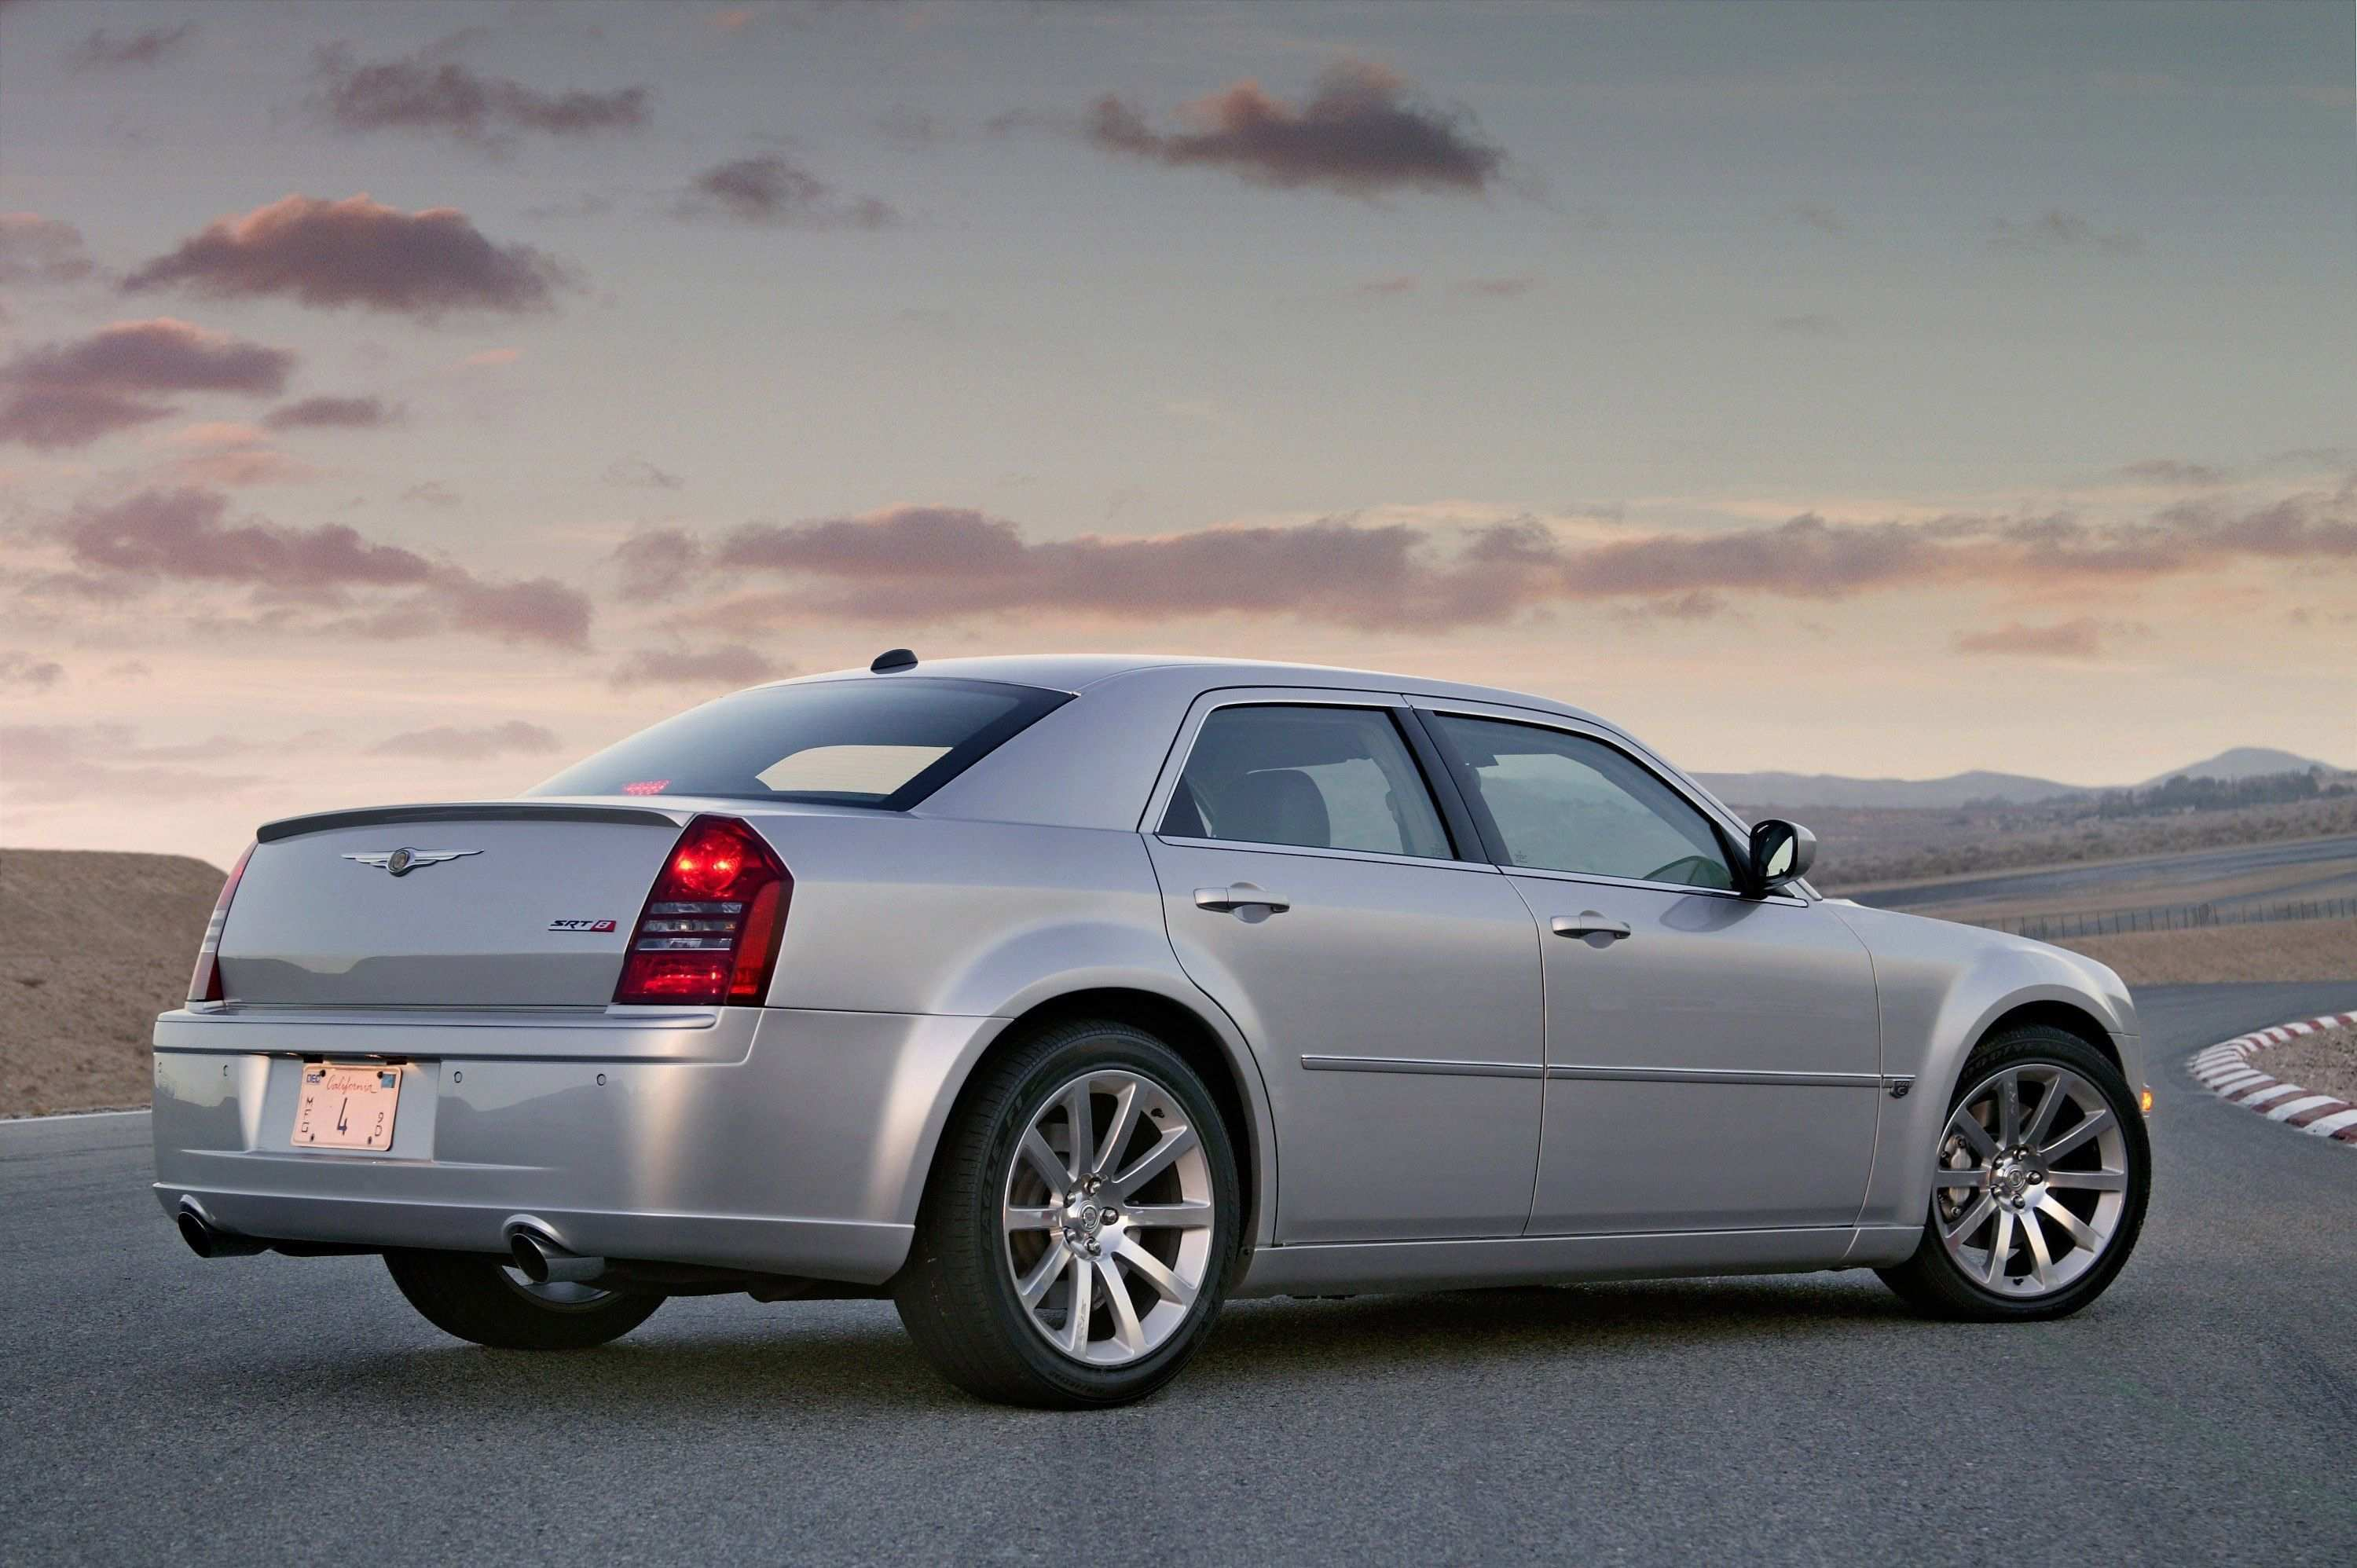 60 A 2020 Chrysler 300 Srt8 Model